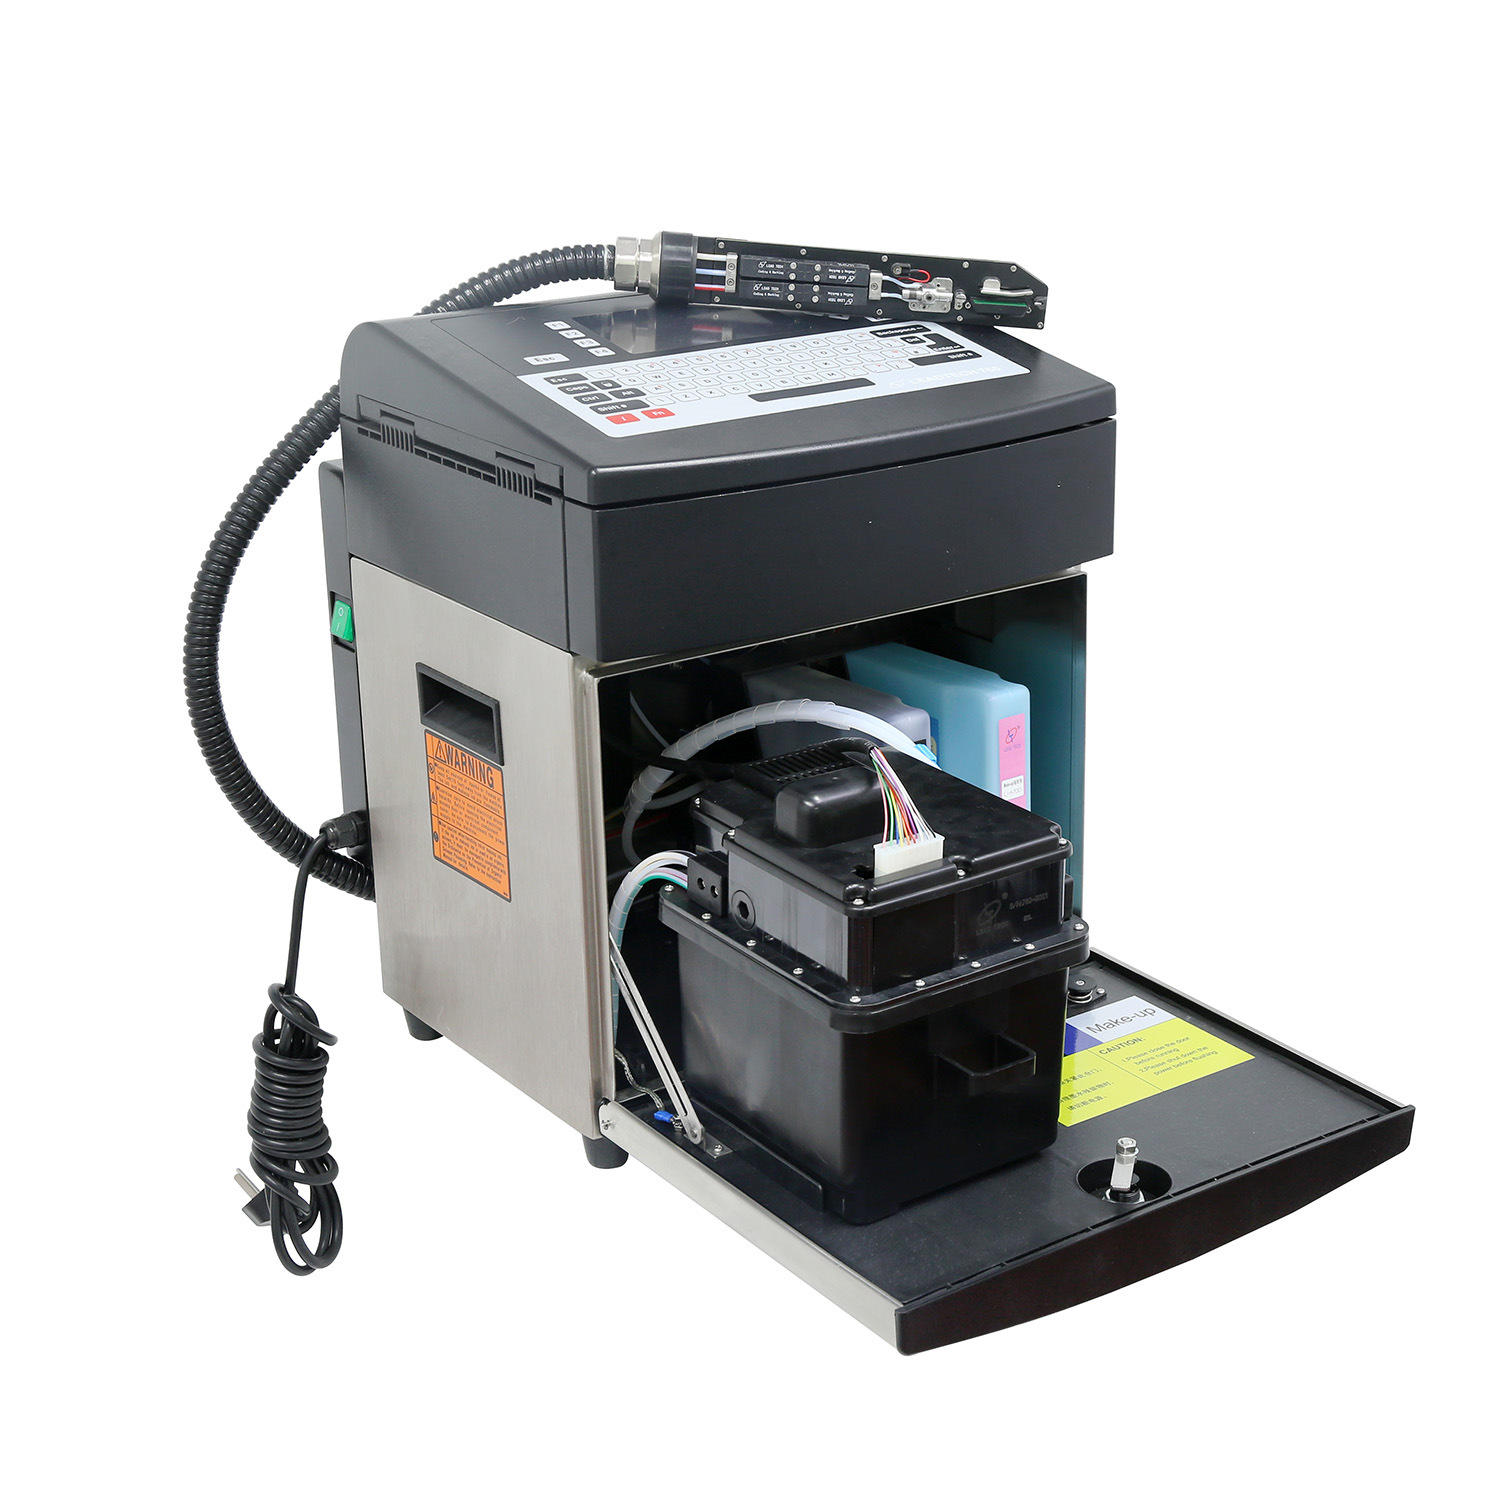 Lead Tech Lt760 Reverse Printing Continuous Cij Inkjet Printer